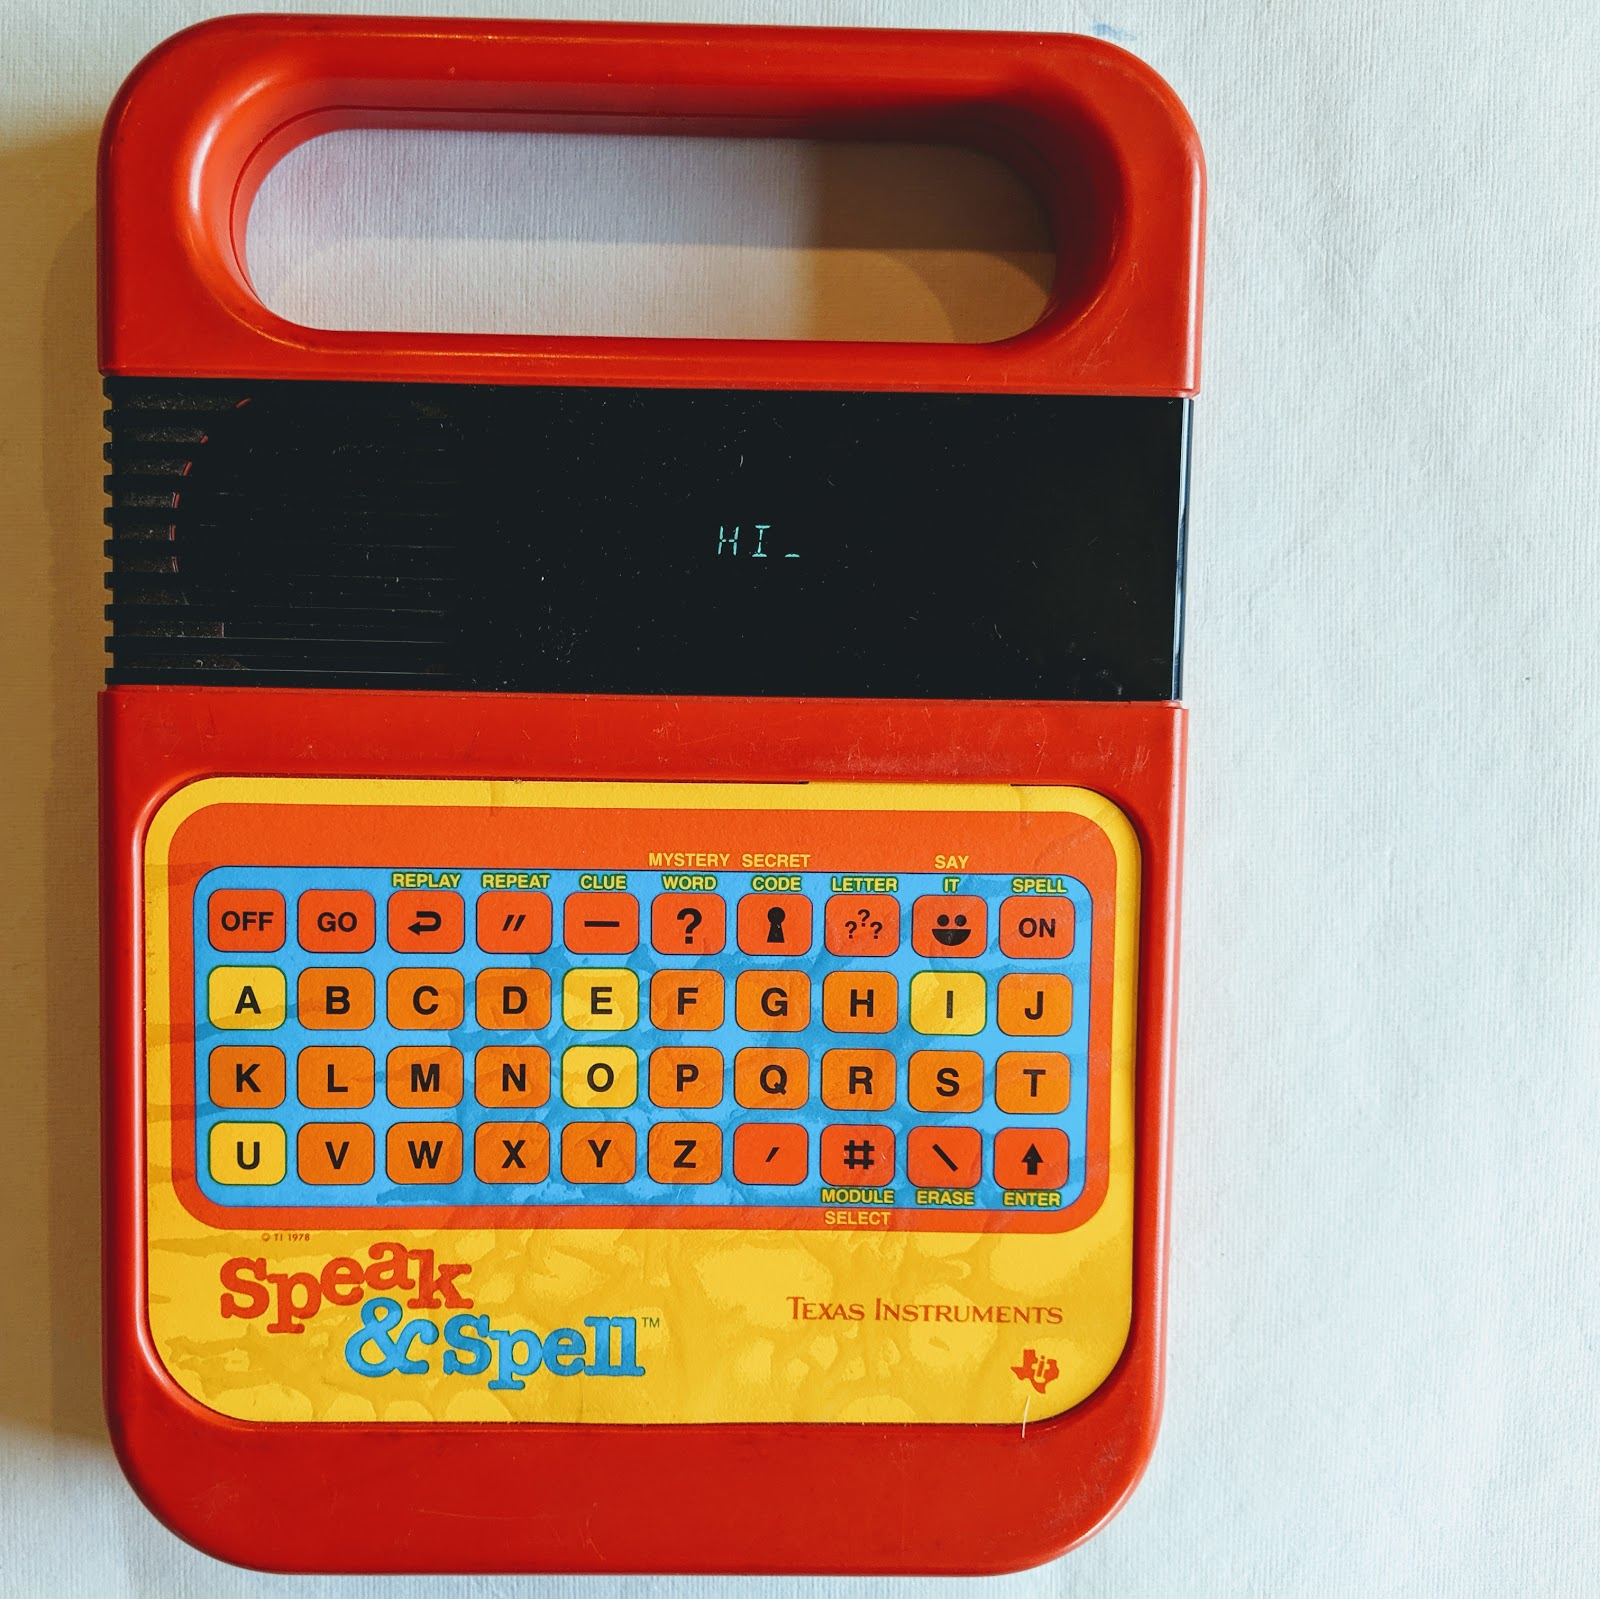 picture of vintage electronic game device